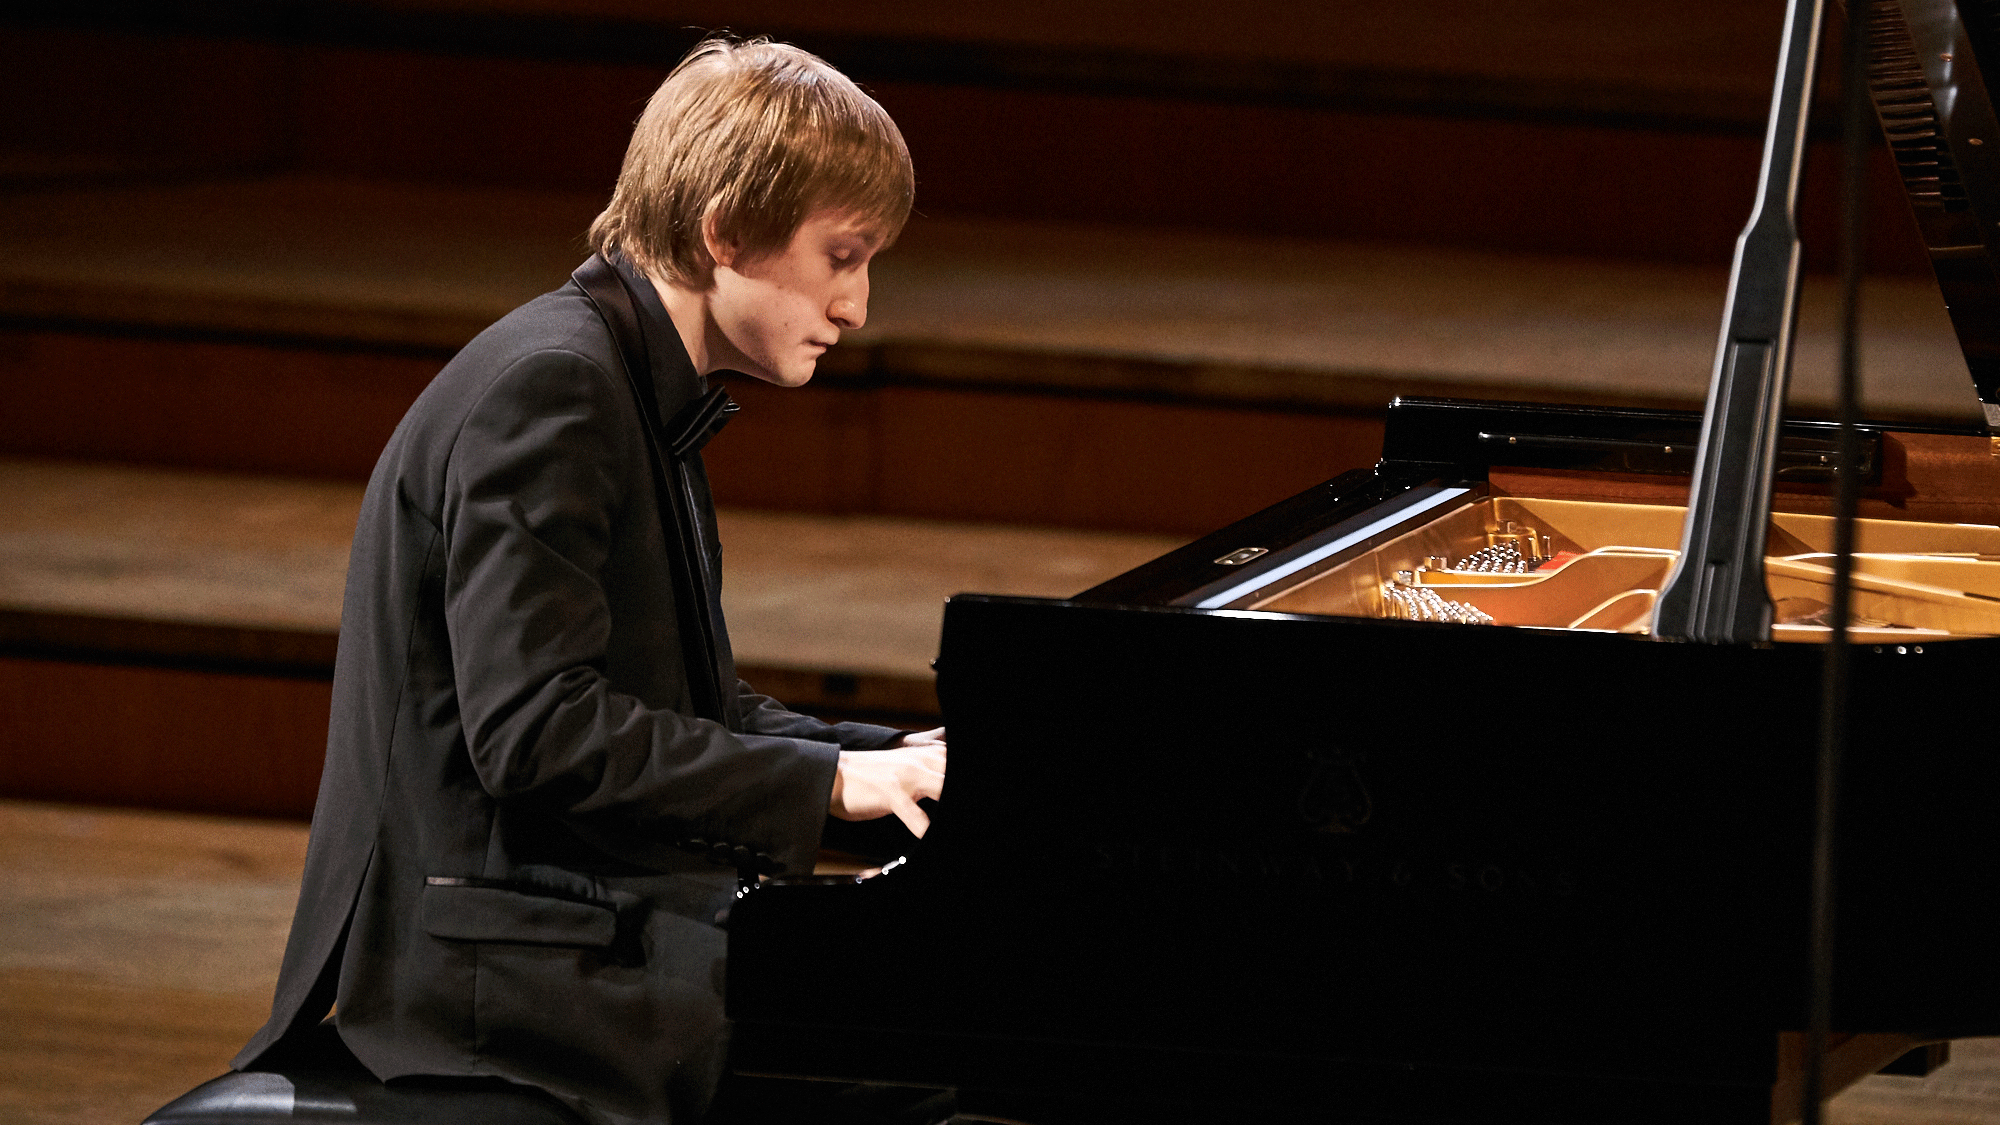 Dmitry Masleev performs Prokofiev's Piano Sonatas No. 1, No. 2, and No. 3